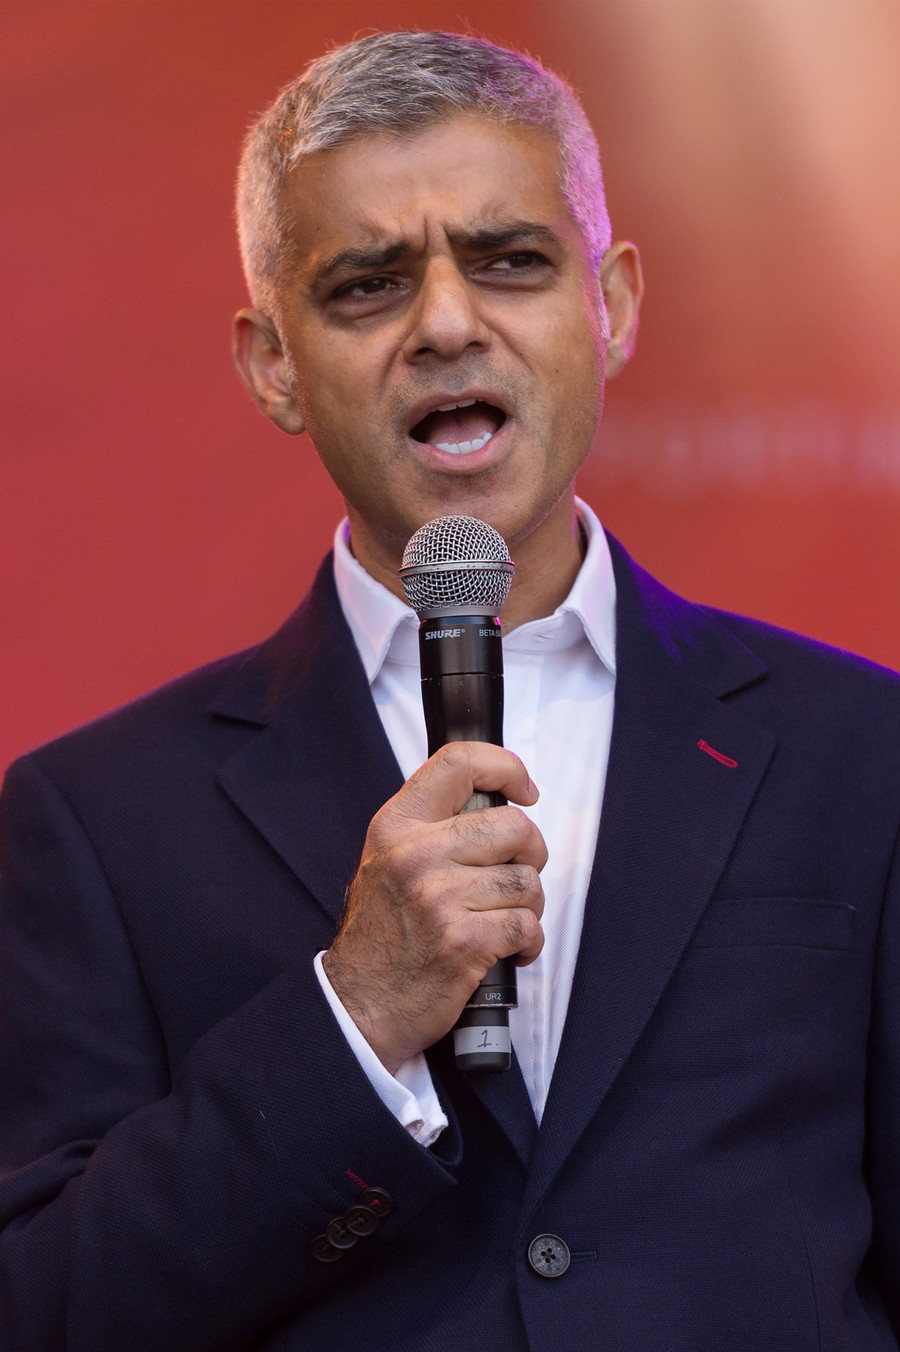 London mayor accuses govt of 'dragging its feet' on counter-terrorism